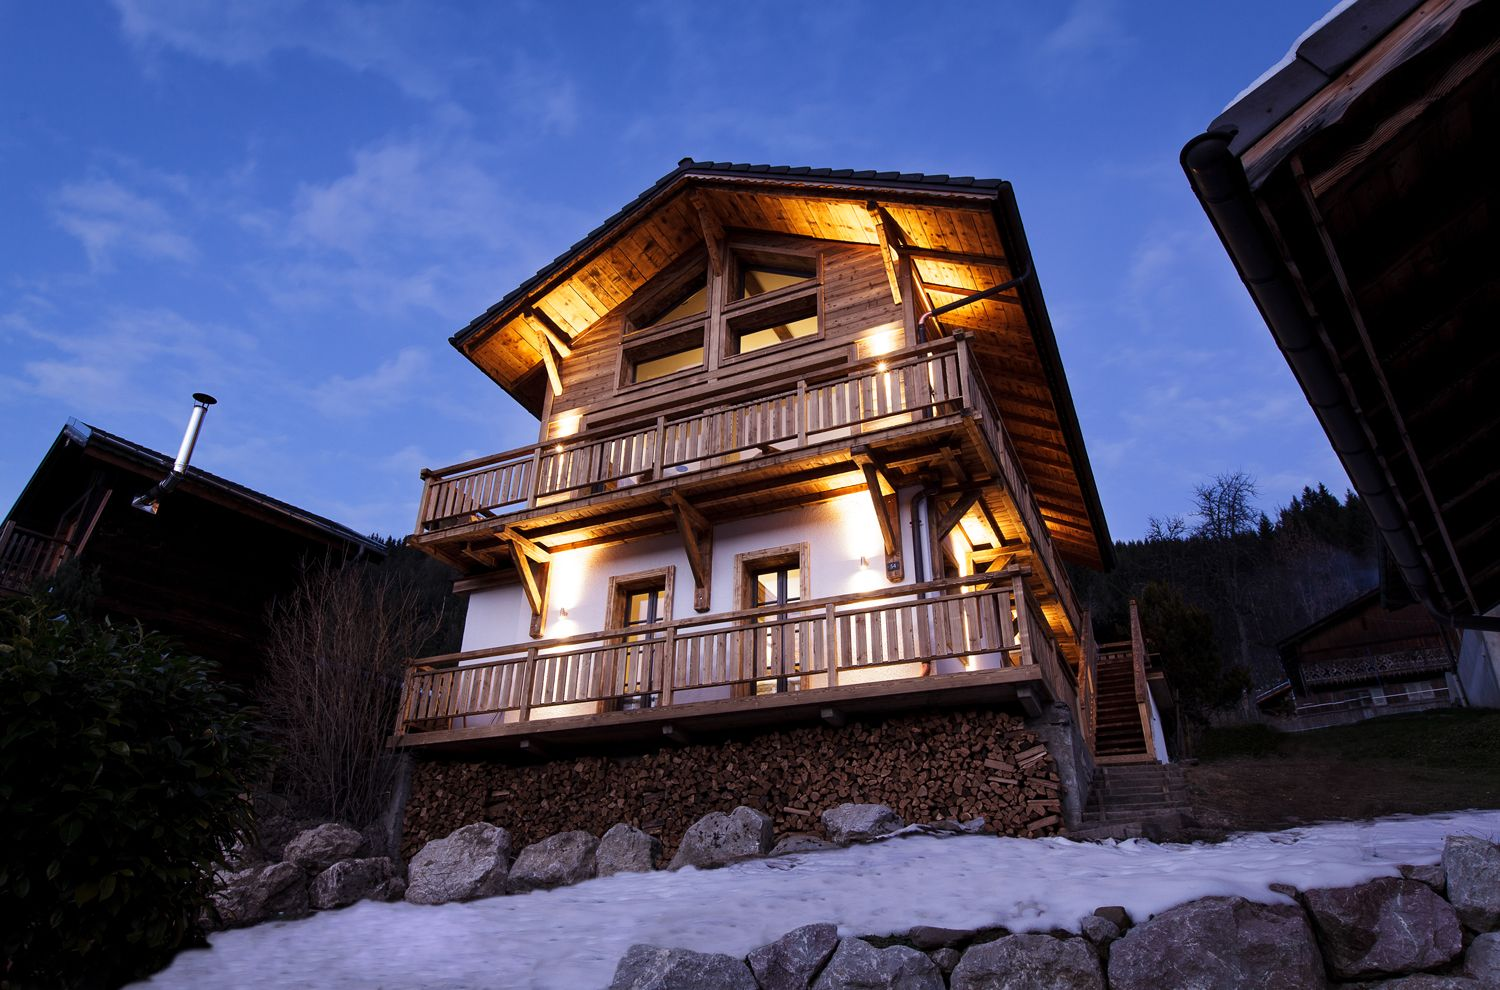 Chalet de Soie - Haute-Savoie, France. An unusual ski chalet, painstakingly restored, in fab Morzine. Be independent or order breakfast, tea and dinner - it's up to you!